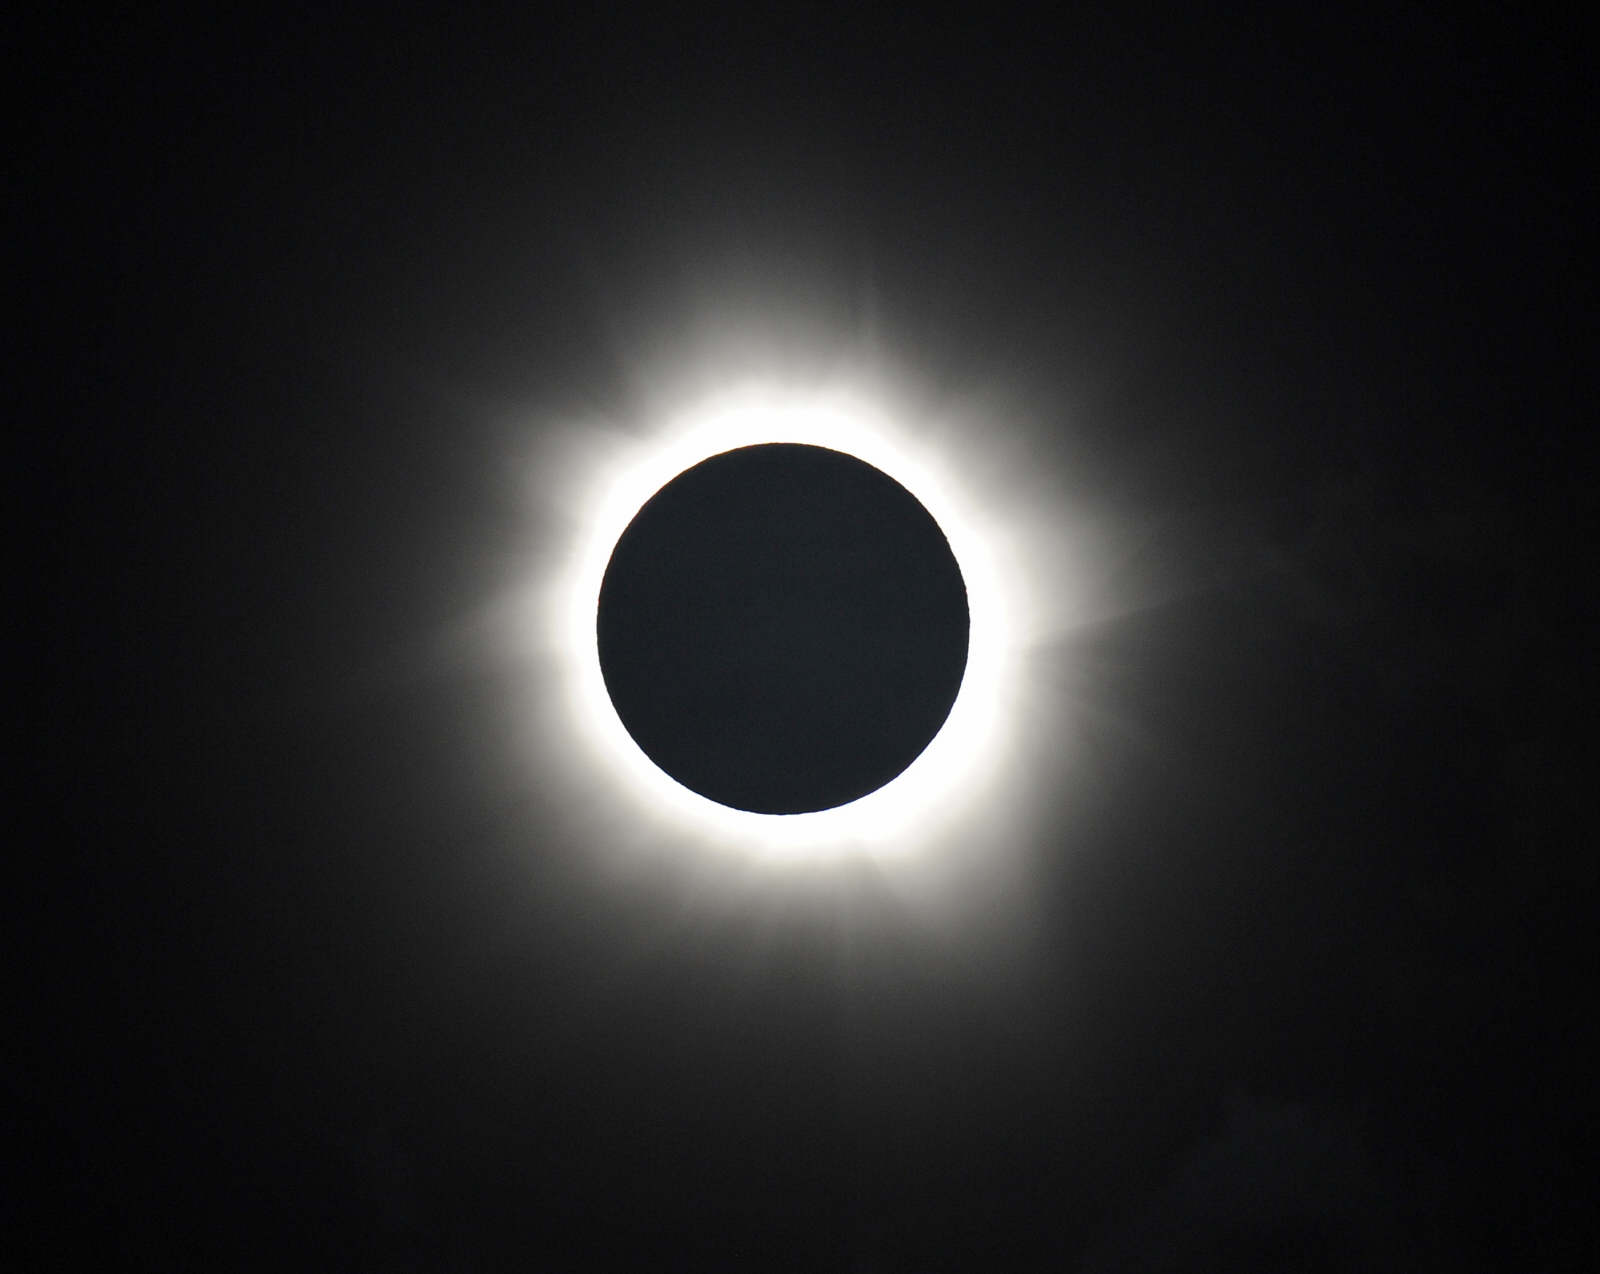 Solar Eclipse Facts Myths And Superstitions About The